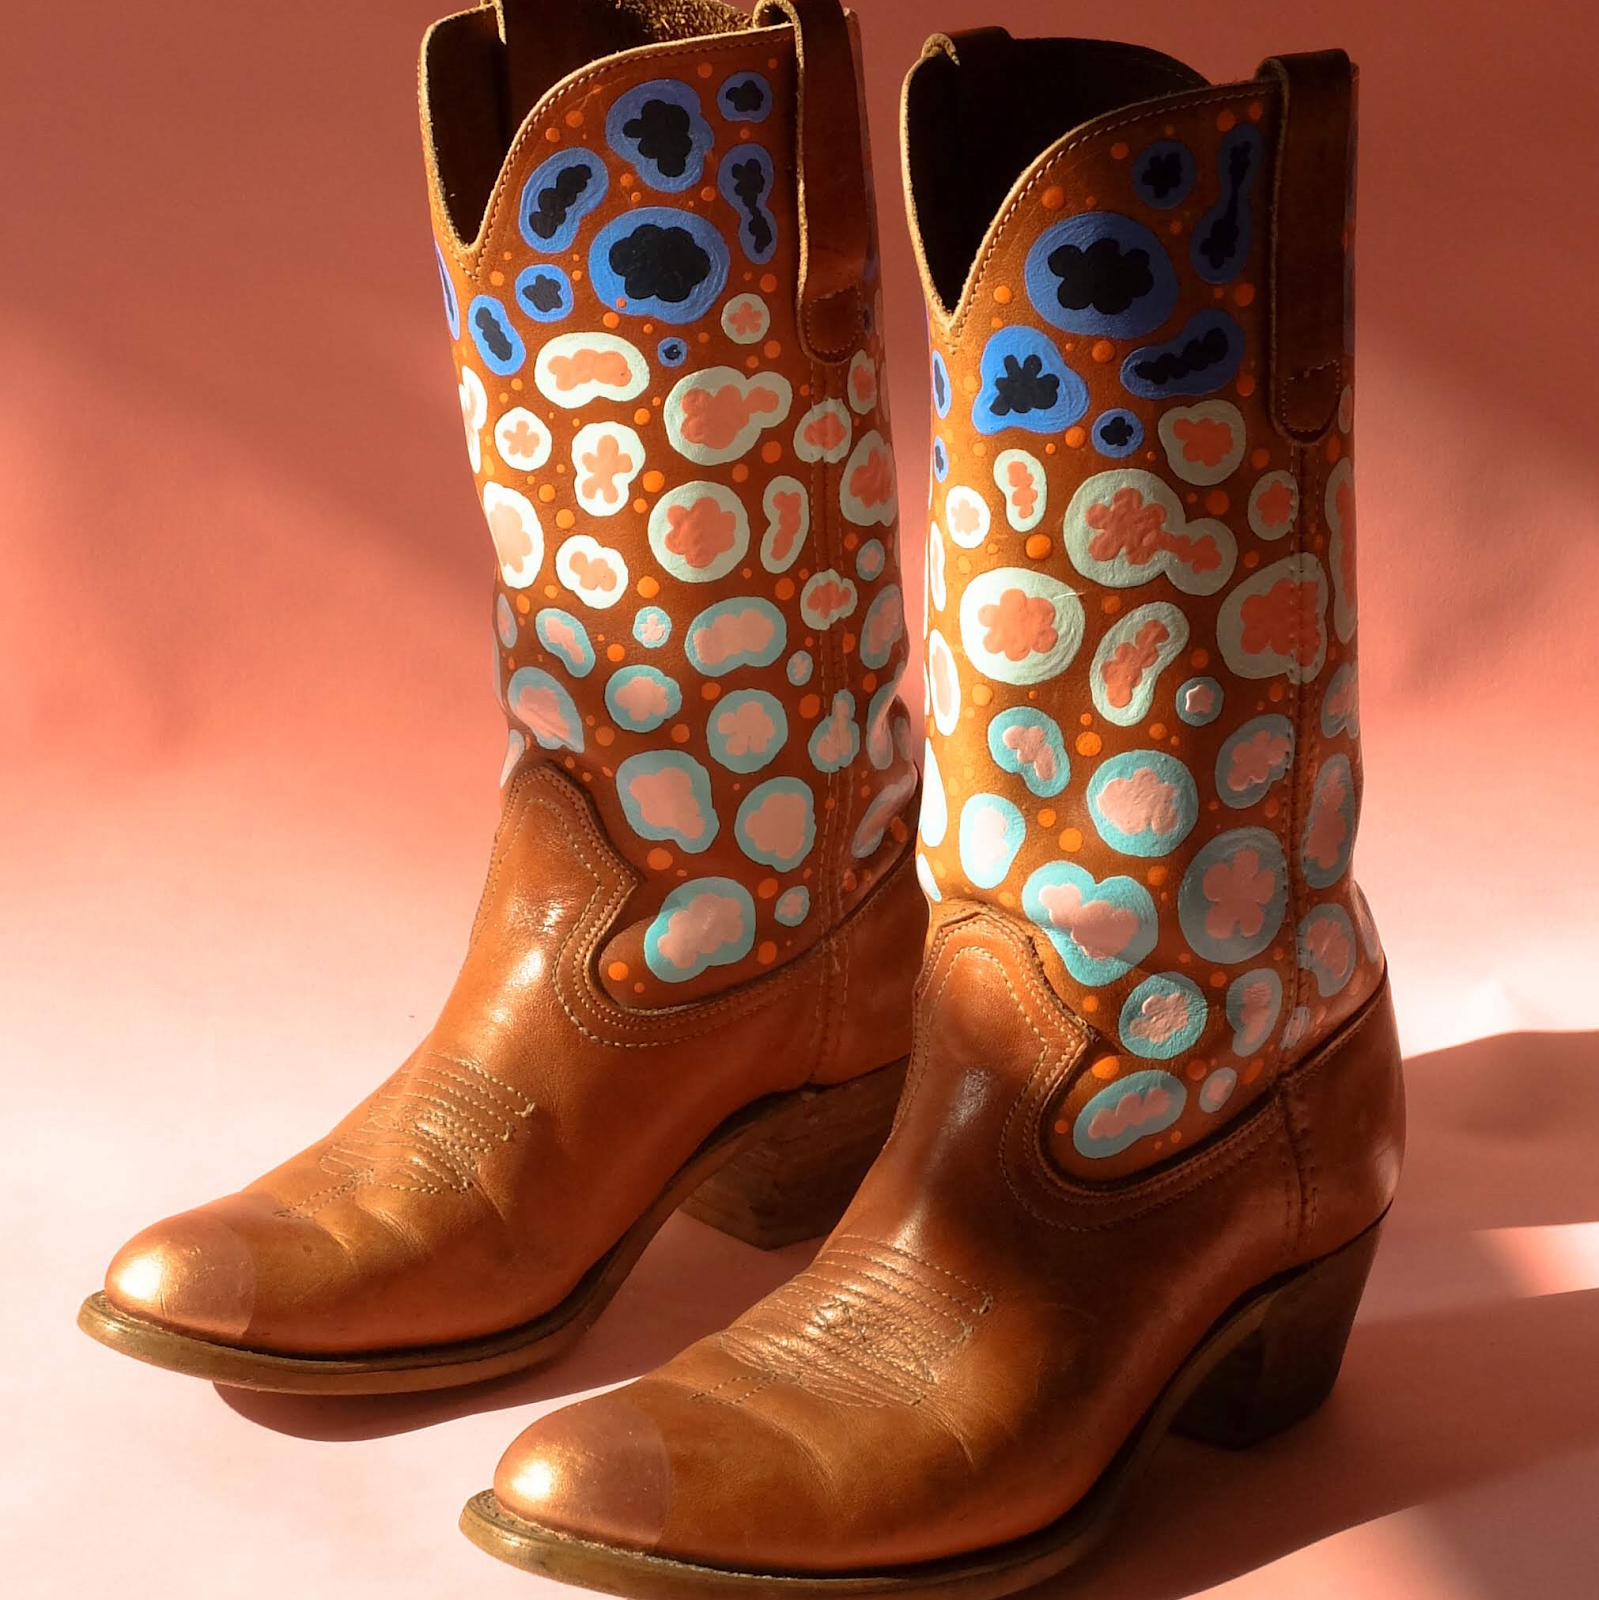 Retro Footwear: The Most Popular Styles of the 1970s